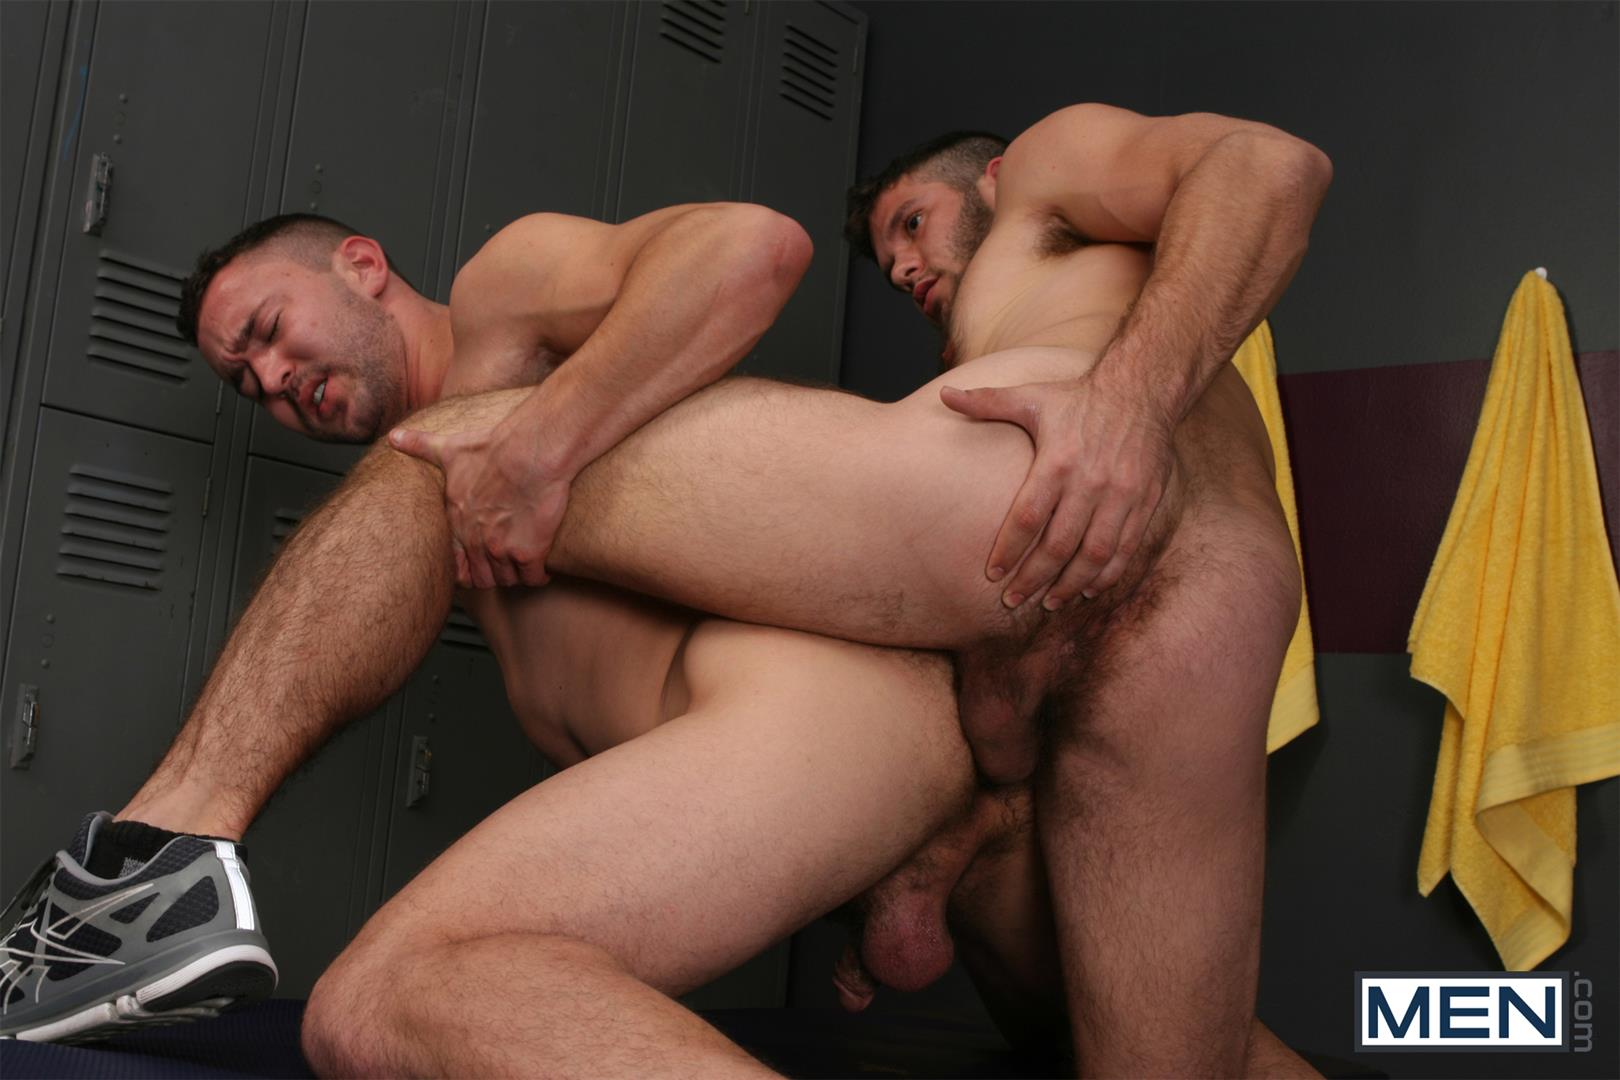 Ass drilling photos gay fucking builders 7